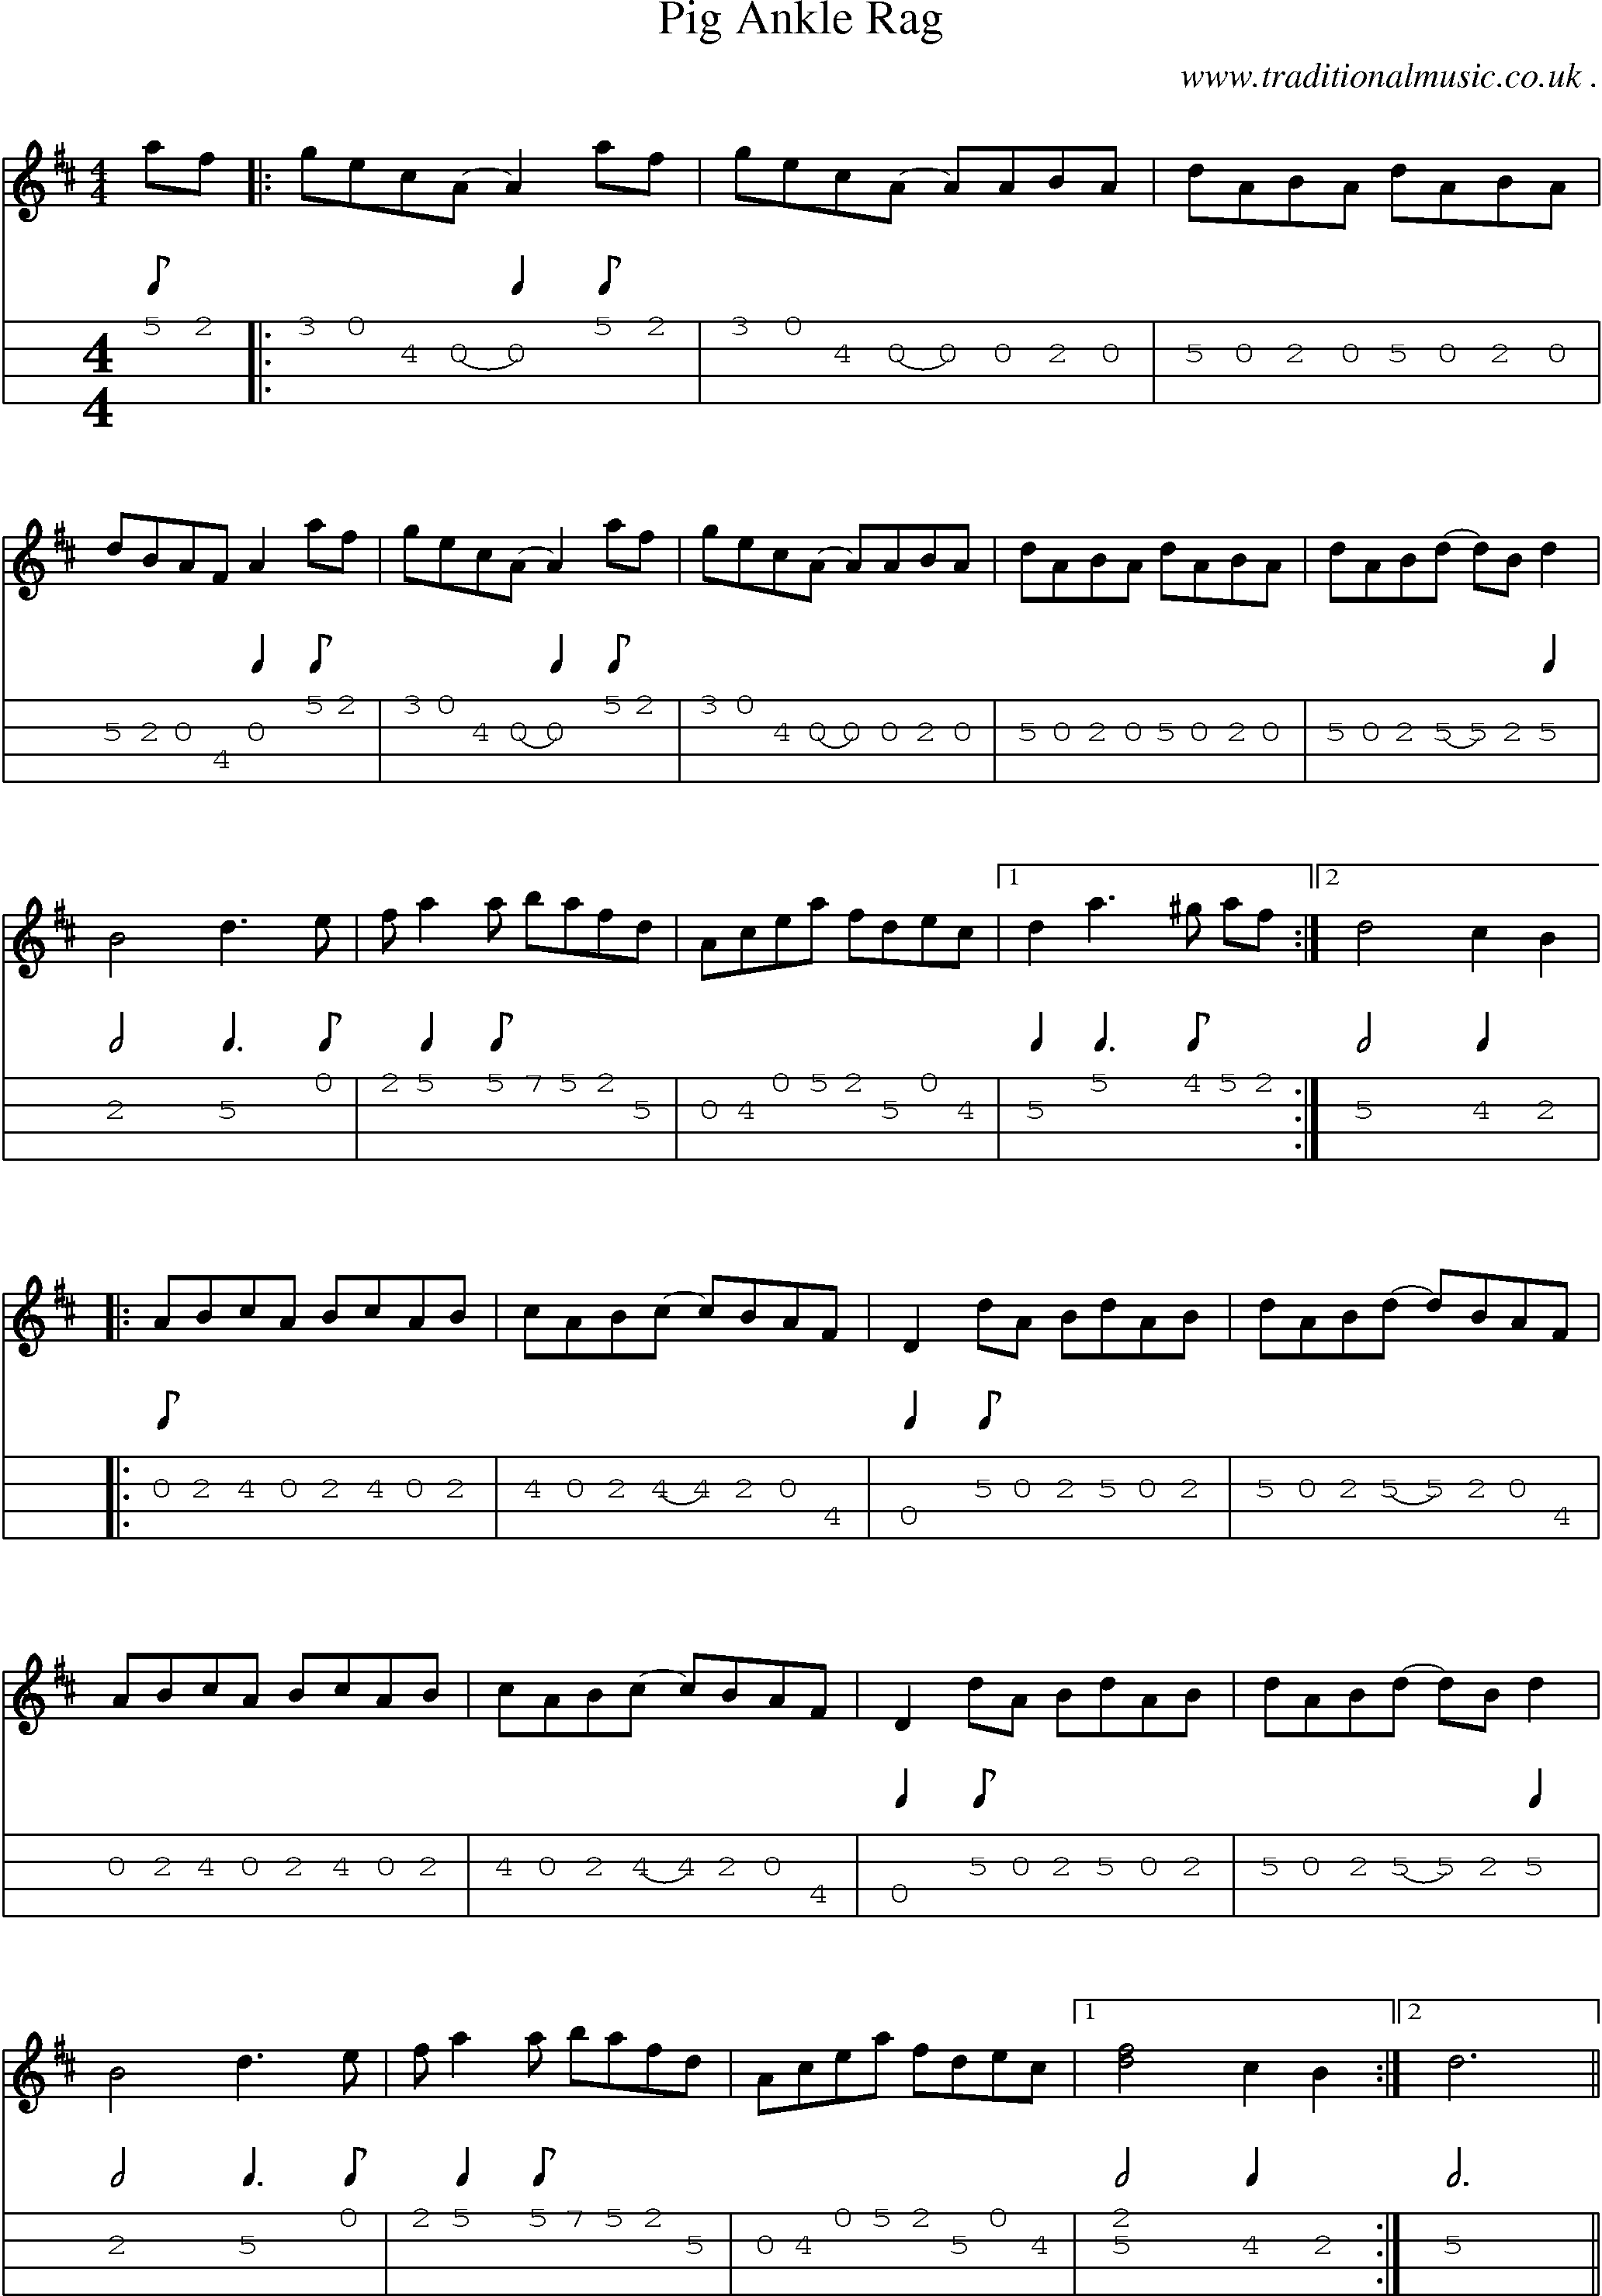 Music Score And Mandolin Tabs For Pig Ankle Rag Mandolin In 2019